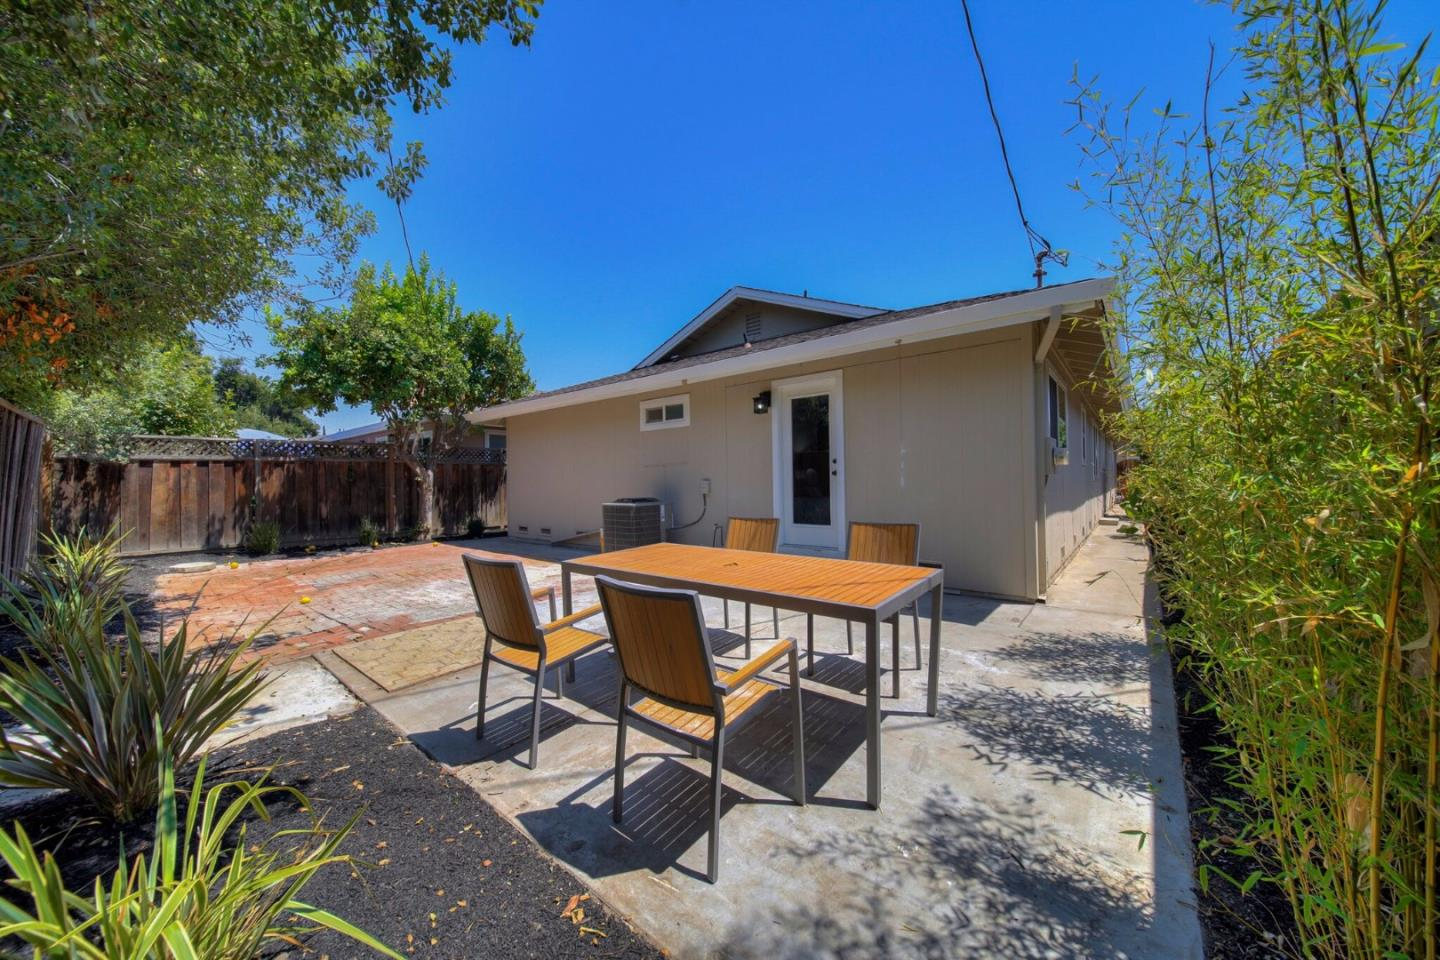 Additional photo for property listing at 201 Brooklyn Avenue  San Jose, Kalifornien 95128 Vereinigte Staaten